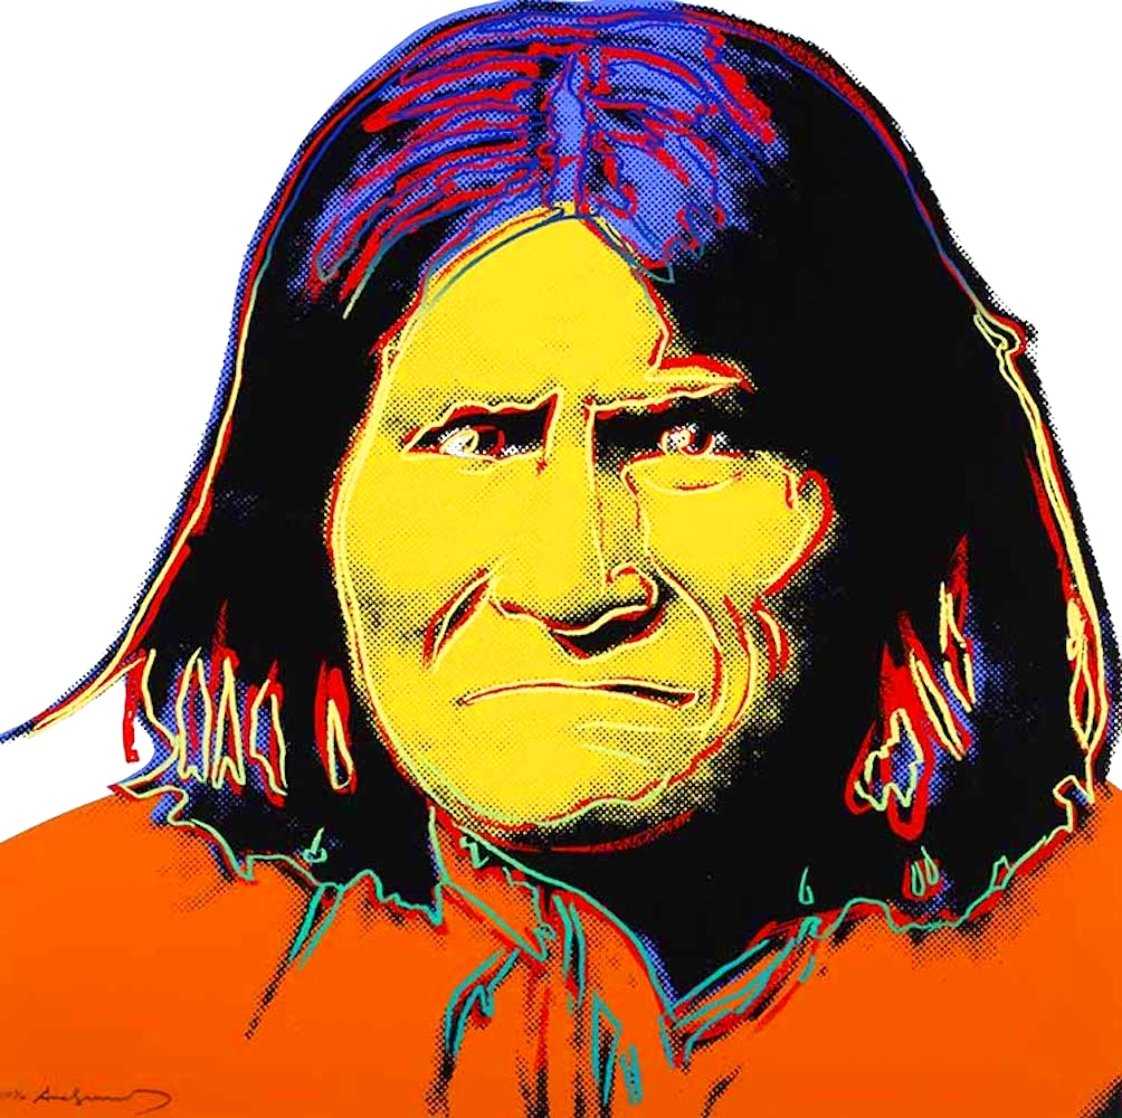 Geronimo, From Cowboys And Indians 1986 Limited Edition Print by Andy Warhol